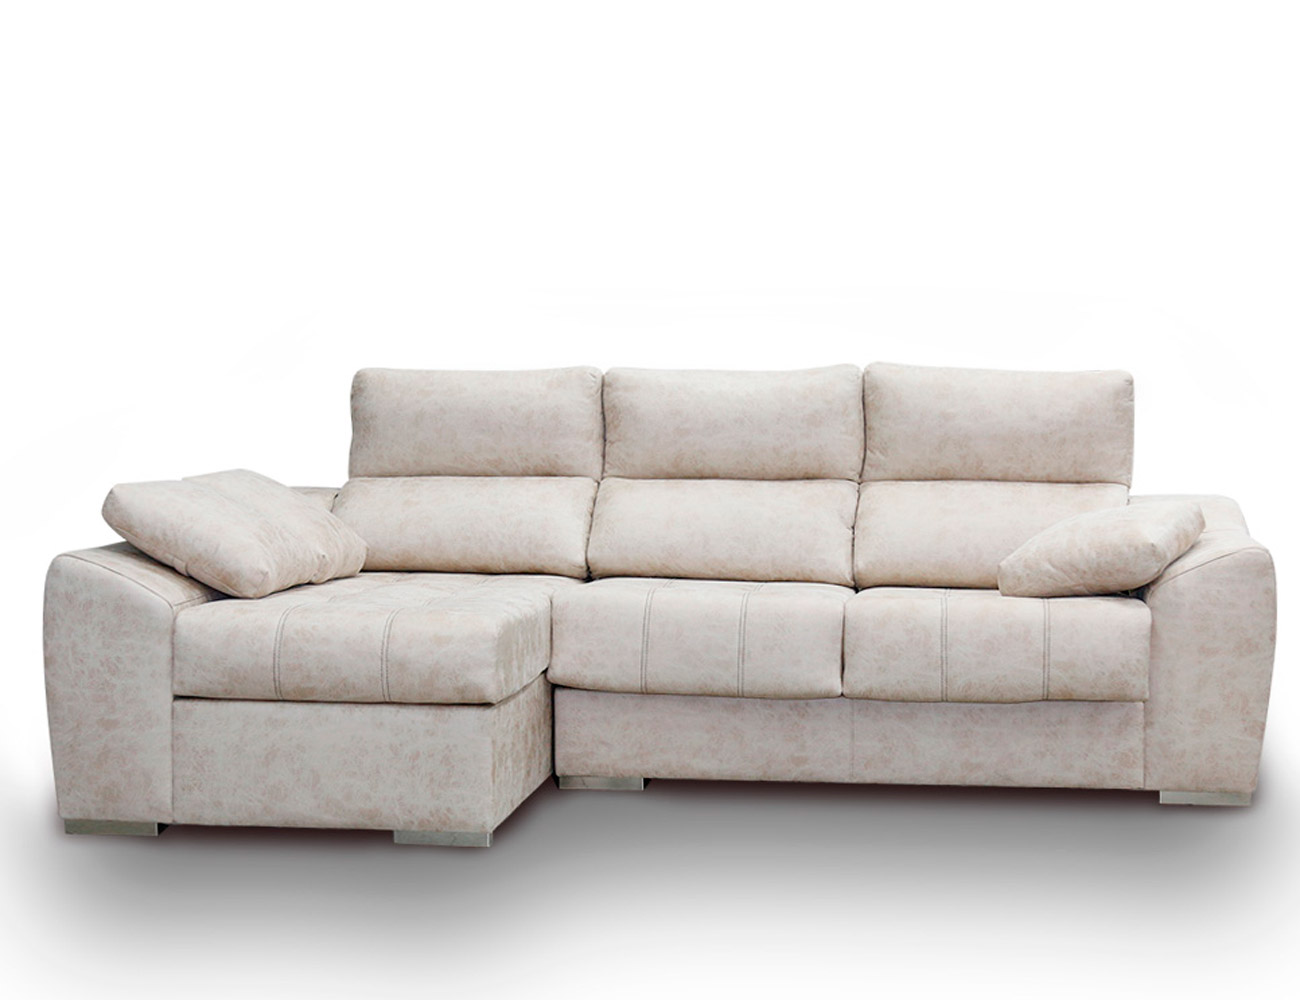 Sofa chaiselongue anti manchas beig blanco9